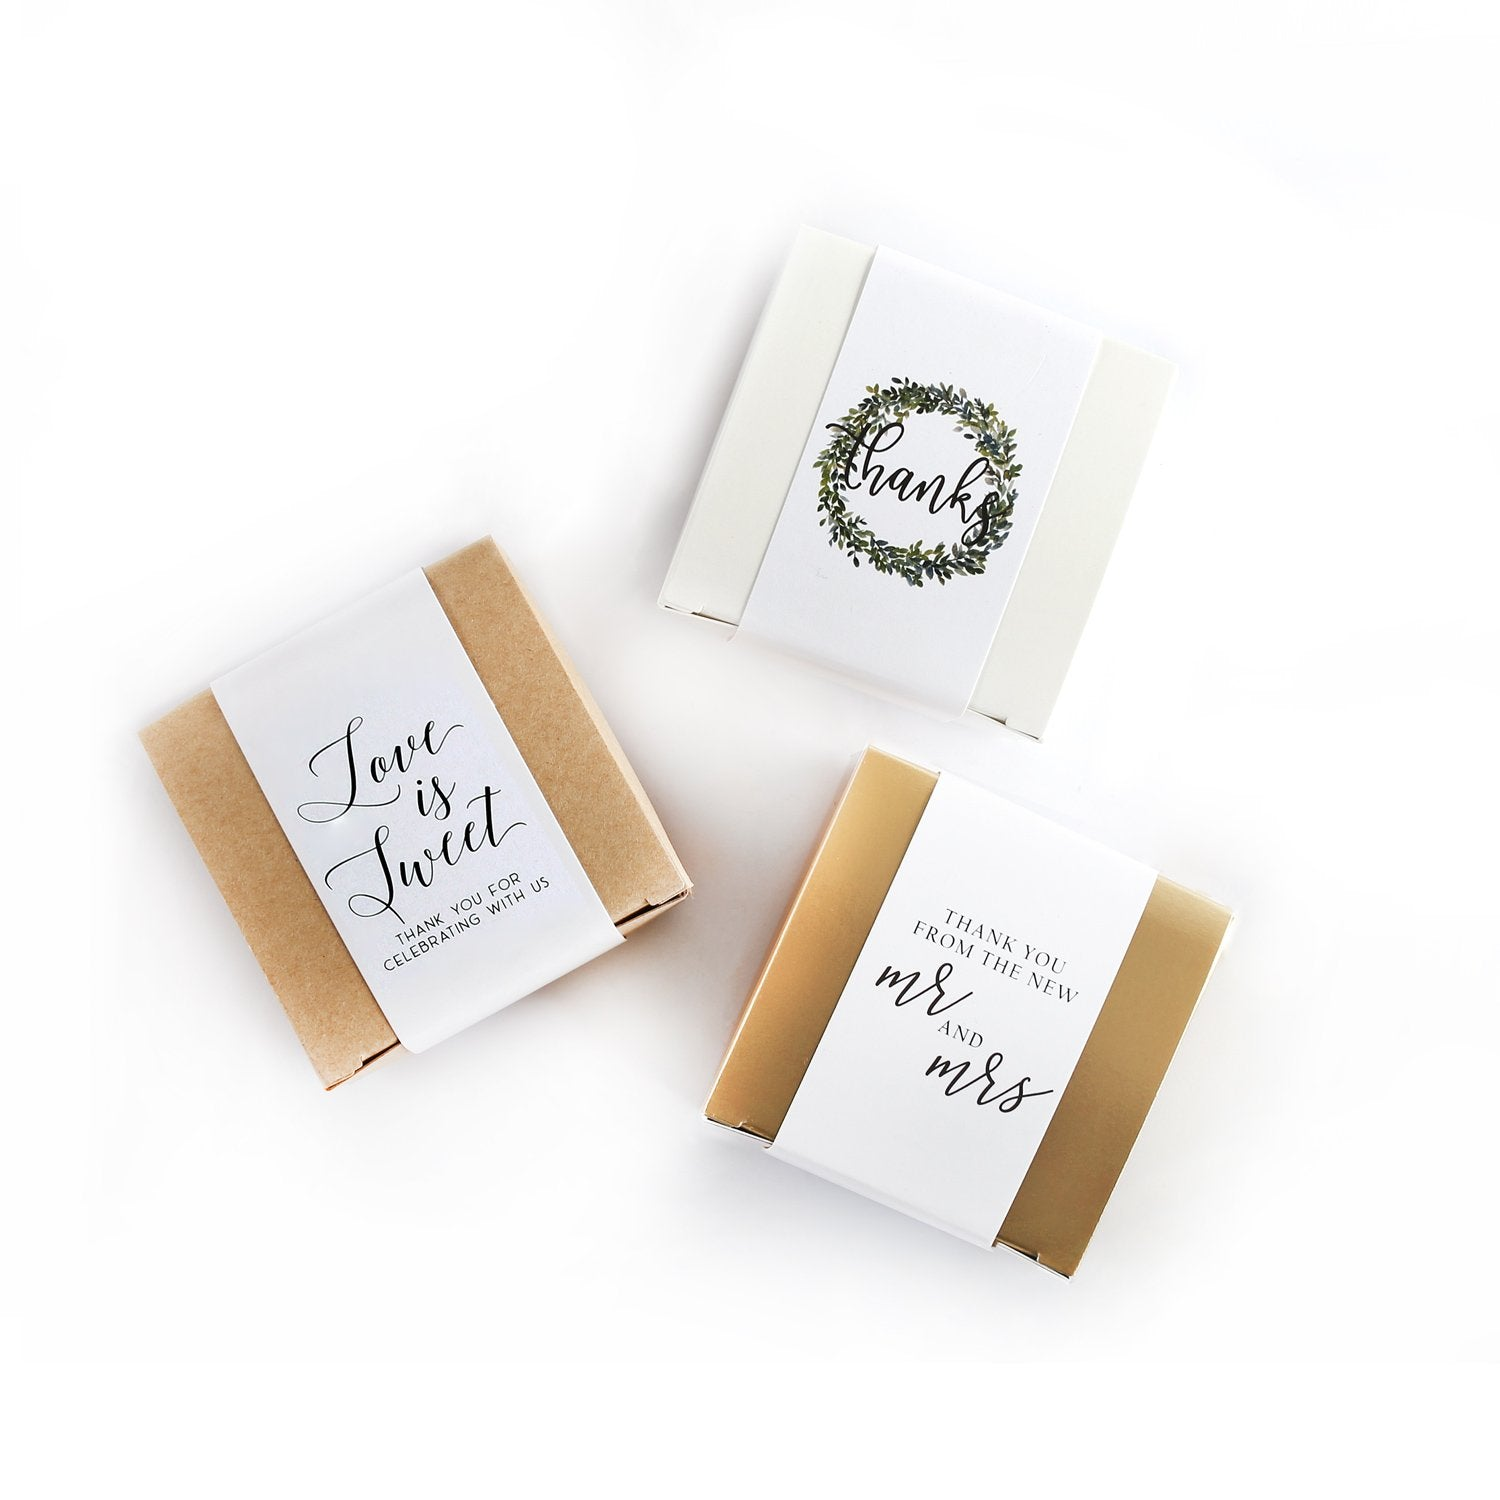 Product photo of paper band options. 'Love is sweet' in a cursive black font. 'Thanks' in a cursive black font with wreath image. 'Mr and Mrs' in black cursive font.